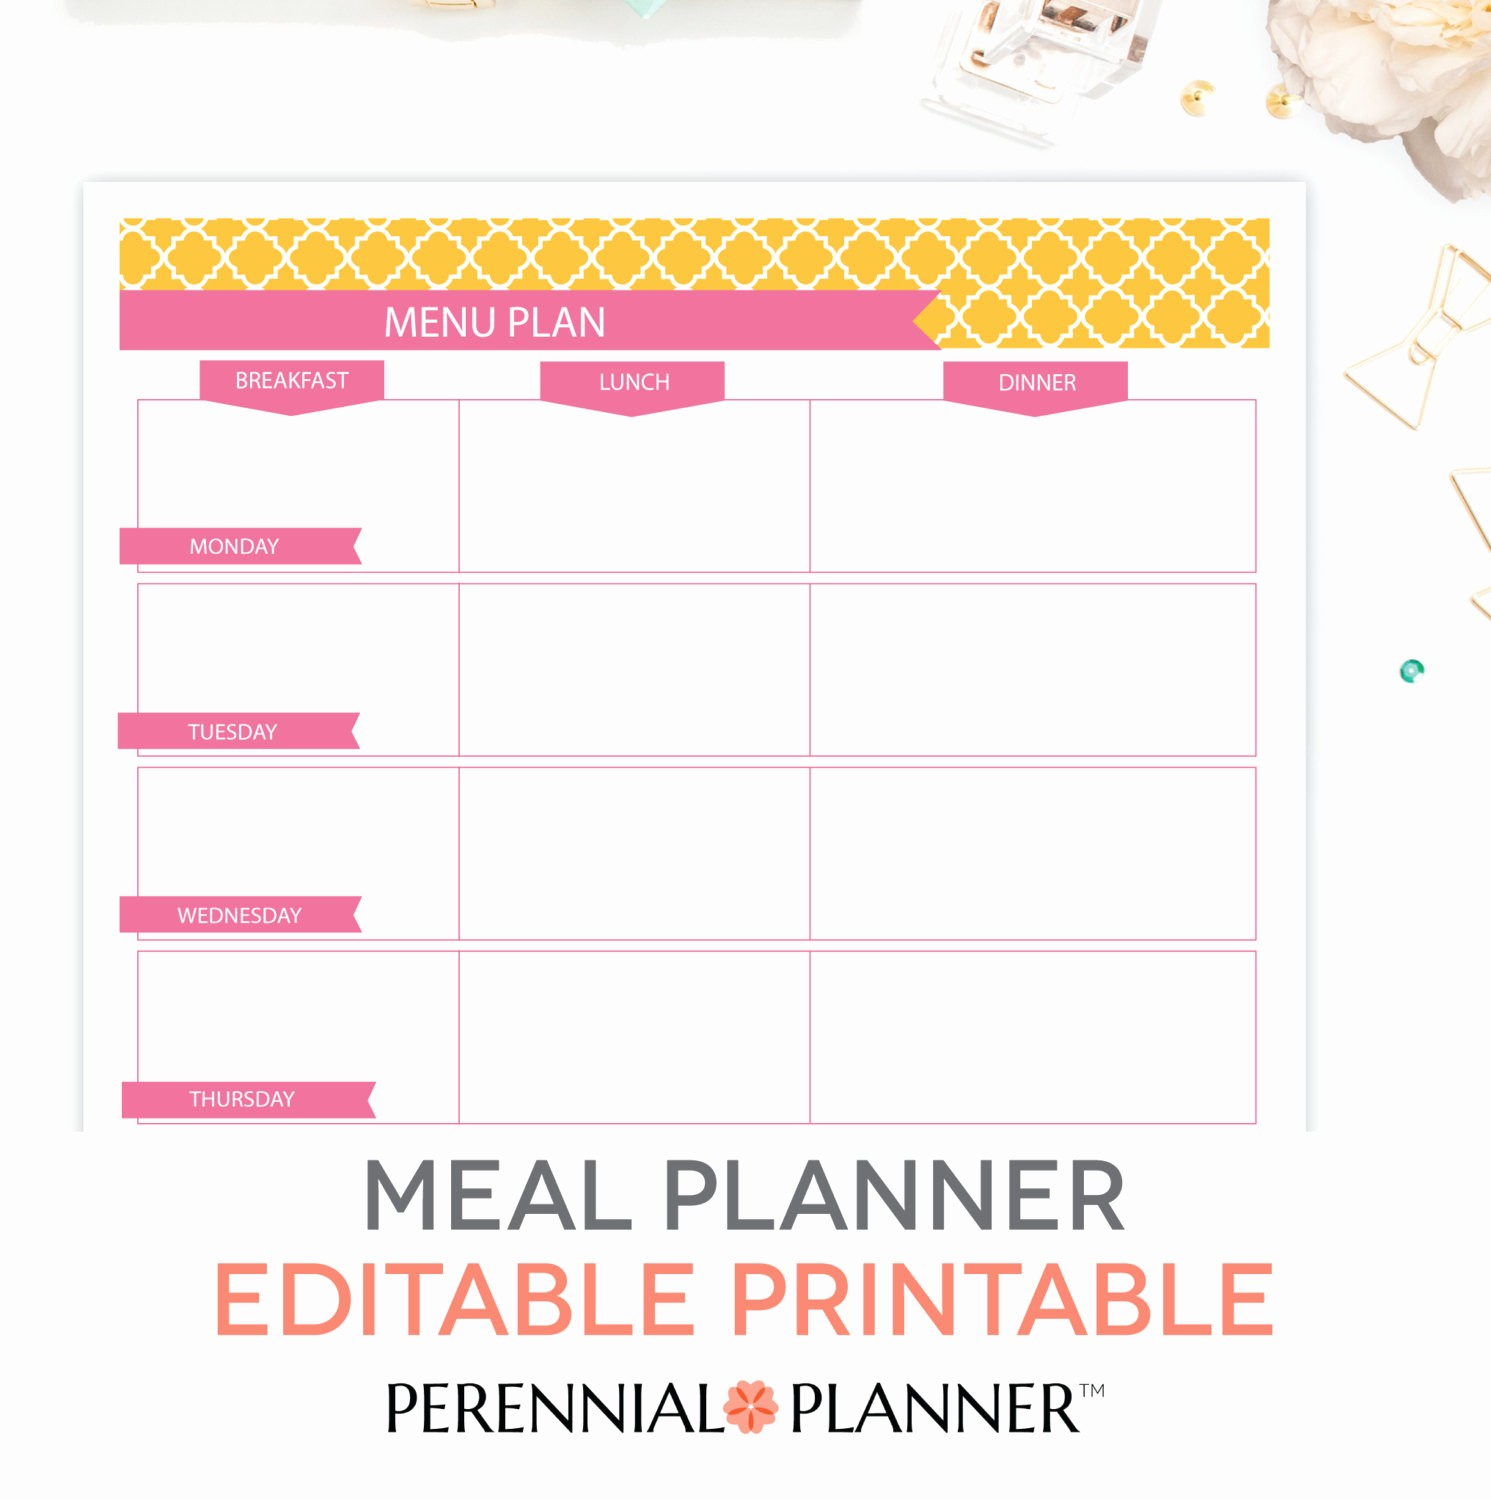 Weekly Meal Planning Template Free Unique Menu Plan Weekly Meal Planning Template Printable Editable